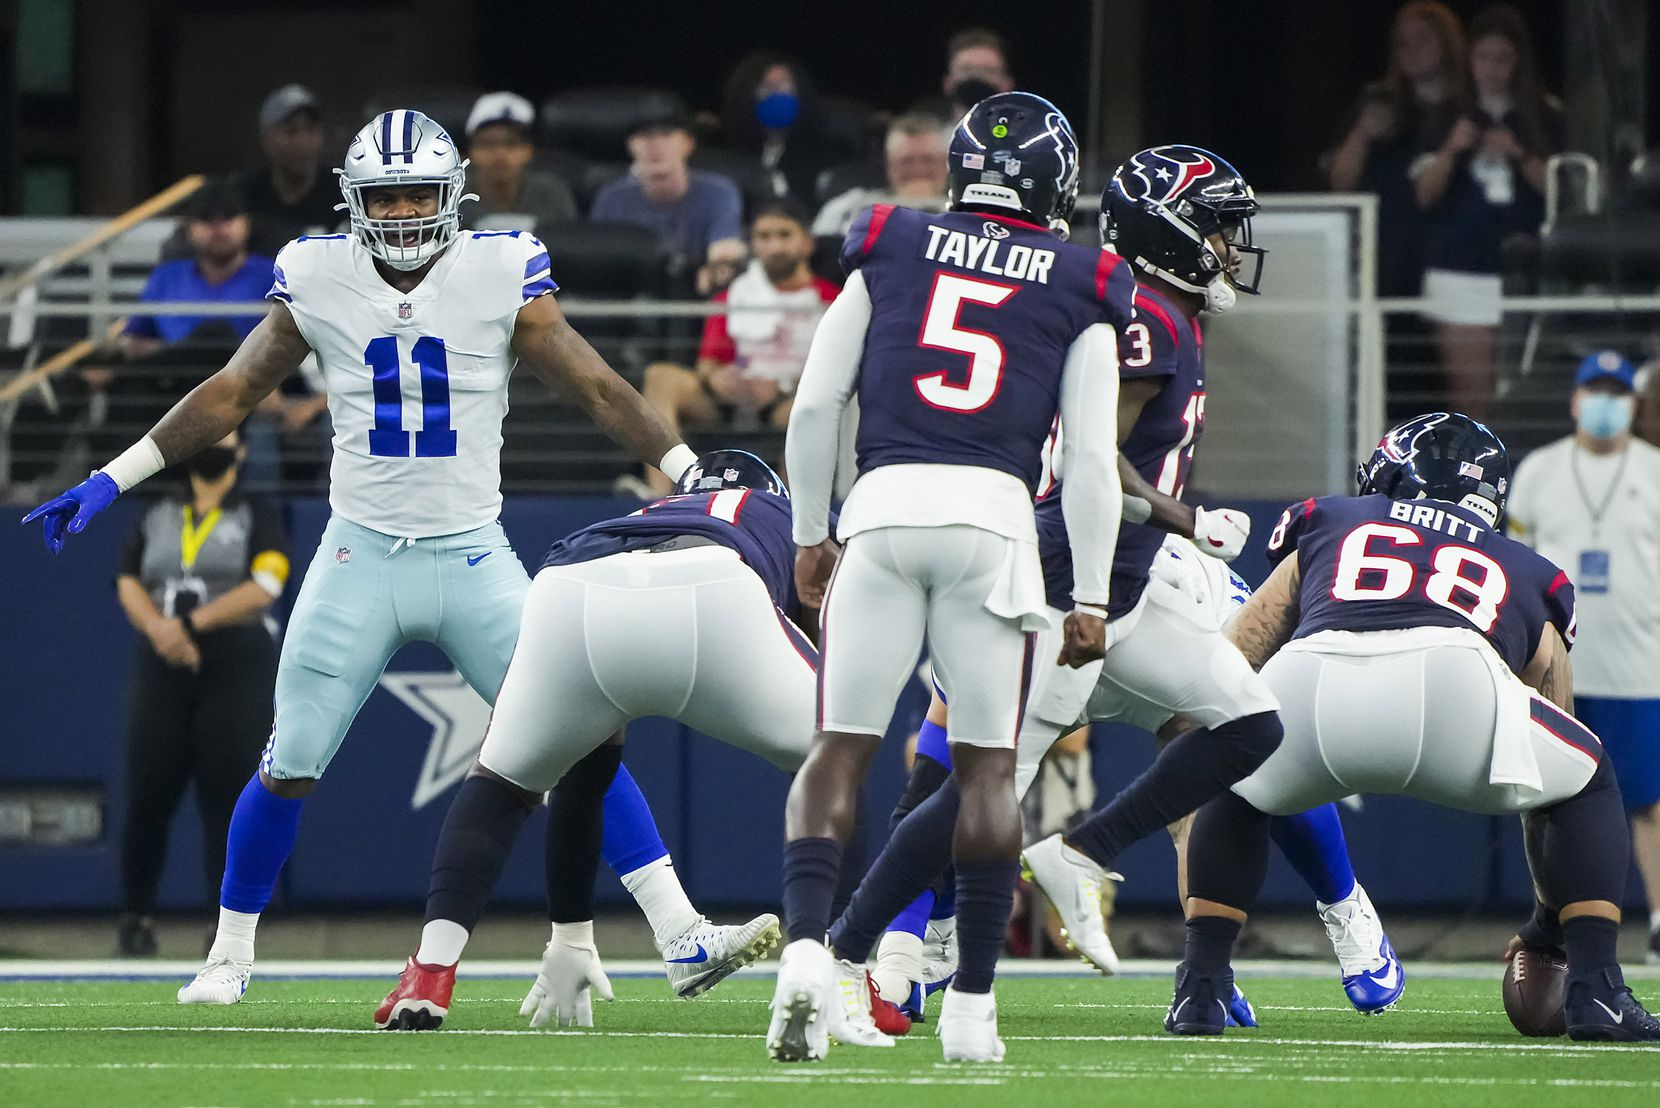 Dallas Cowboys linebacker Micah Parsons (11) lines up as Houston Texans quarterback Tyrod Taylor (5) prepares to take a snap from center Justin Britt (68) during the first half of a preseason NFL football game at AT&T Stadium on Saturday, Aug. 21, 2021, in Arlington.